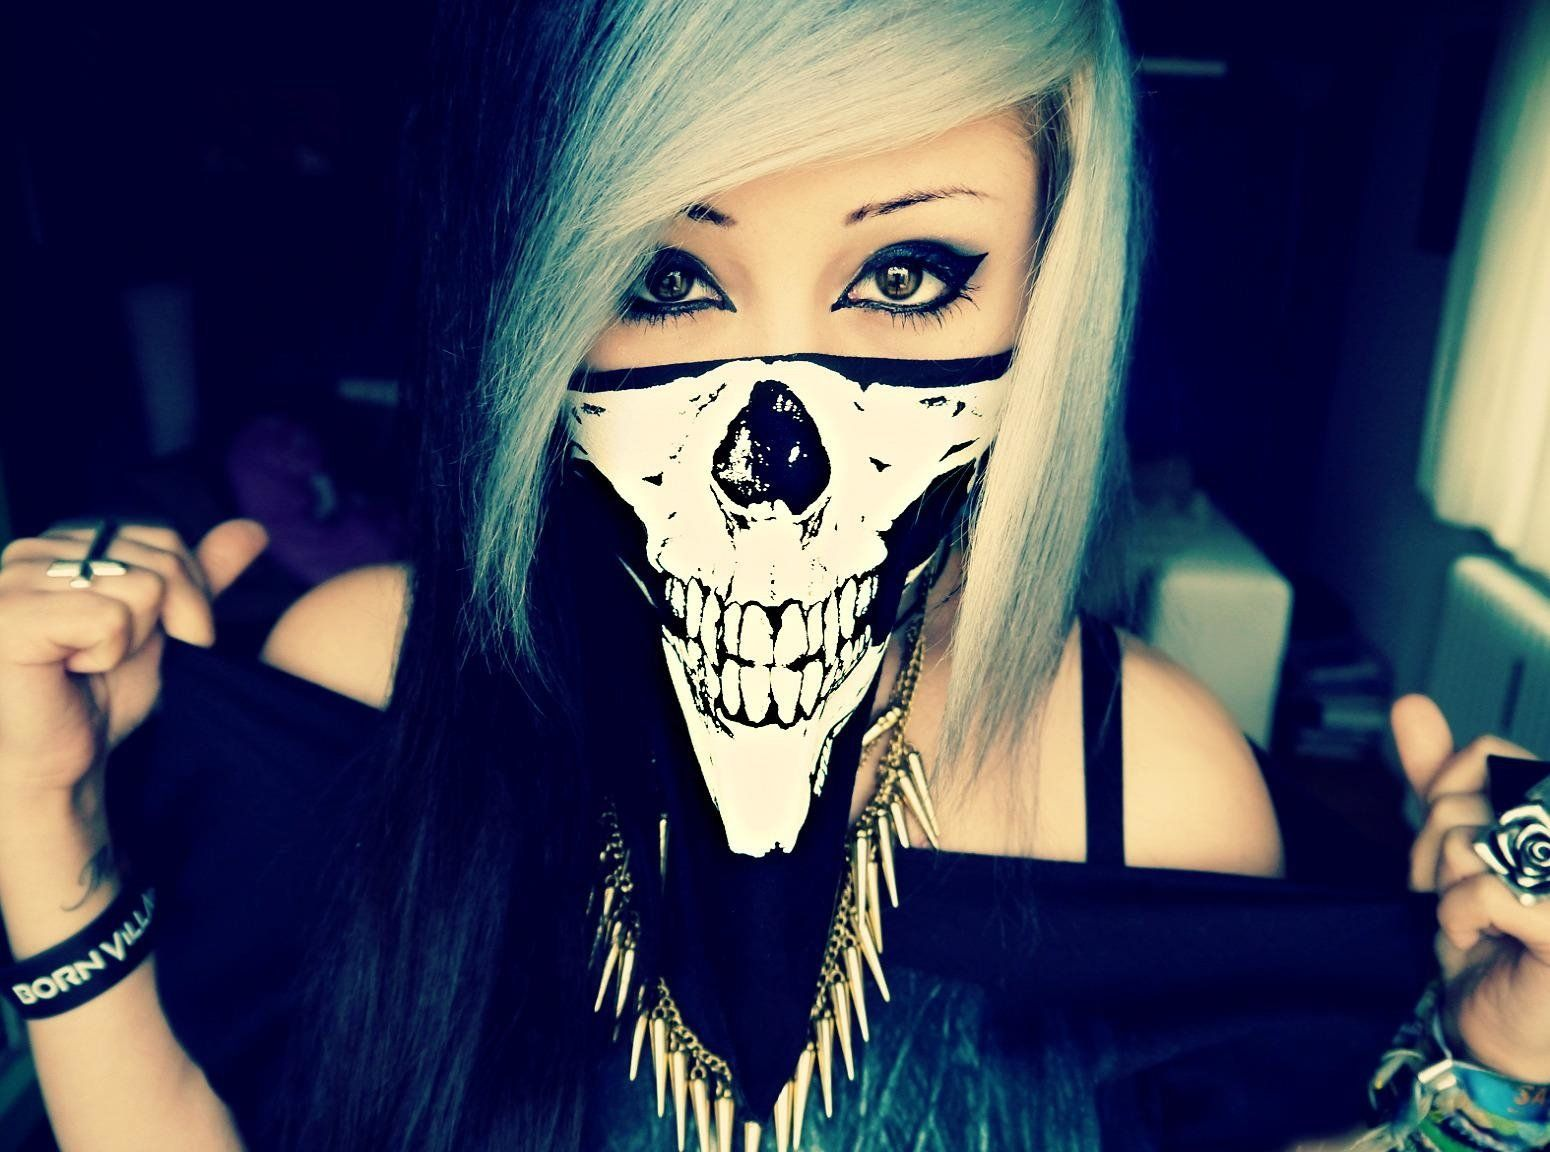 1550x1152 Emo Girl Skull Wallpaper and Background Image   1550x1152   ID ...